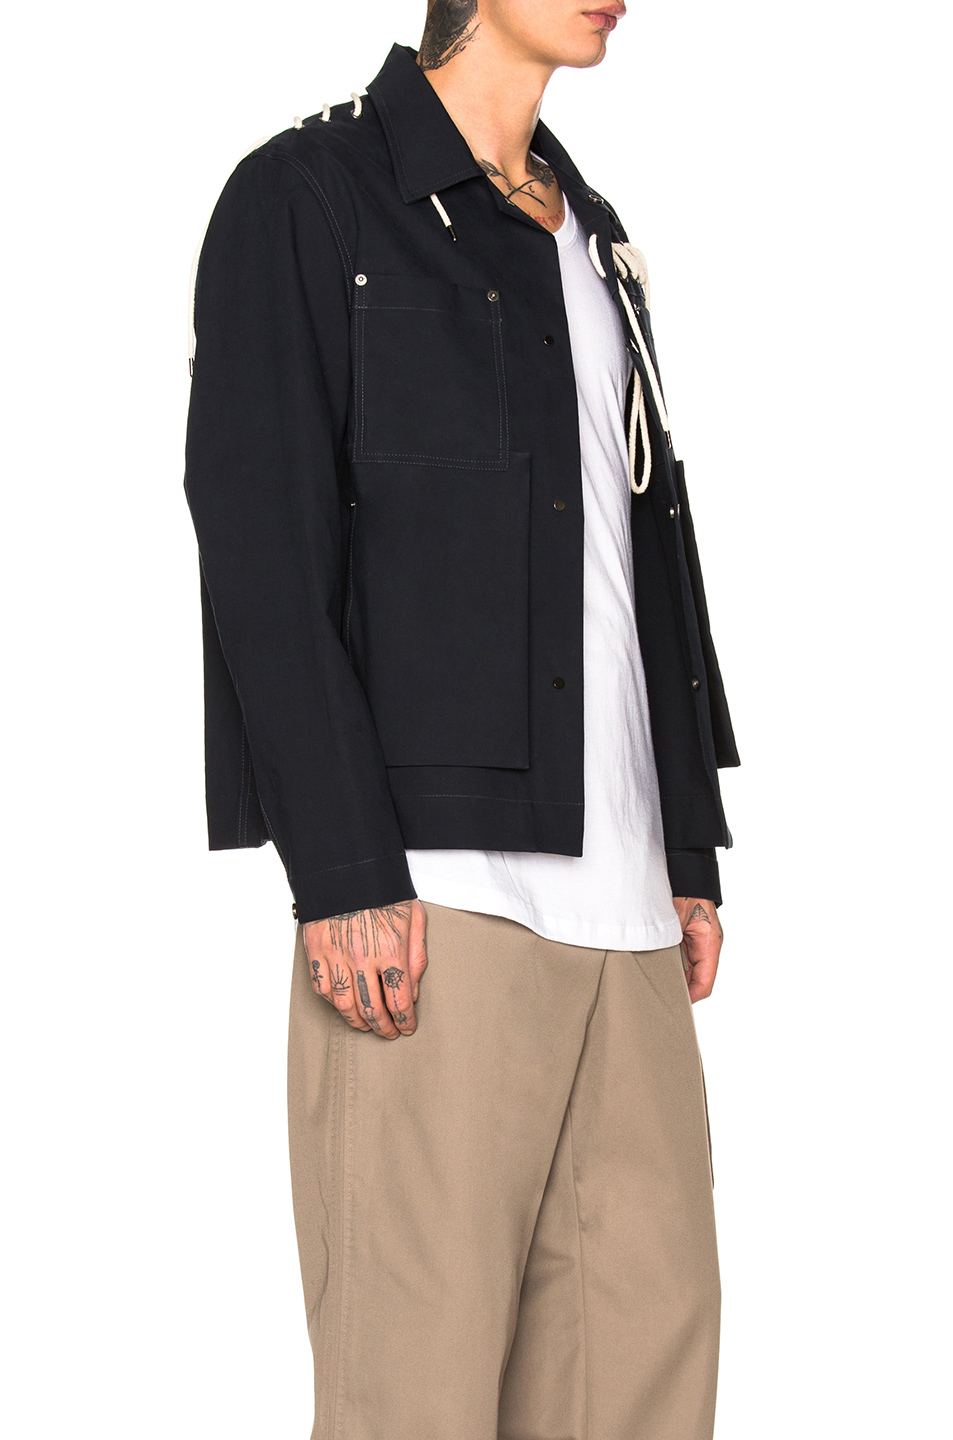 Craig Green Laced Bonded Worker Jacket